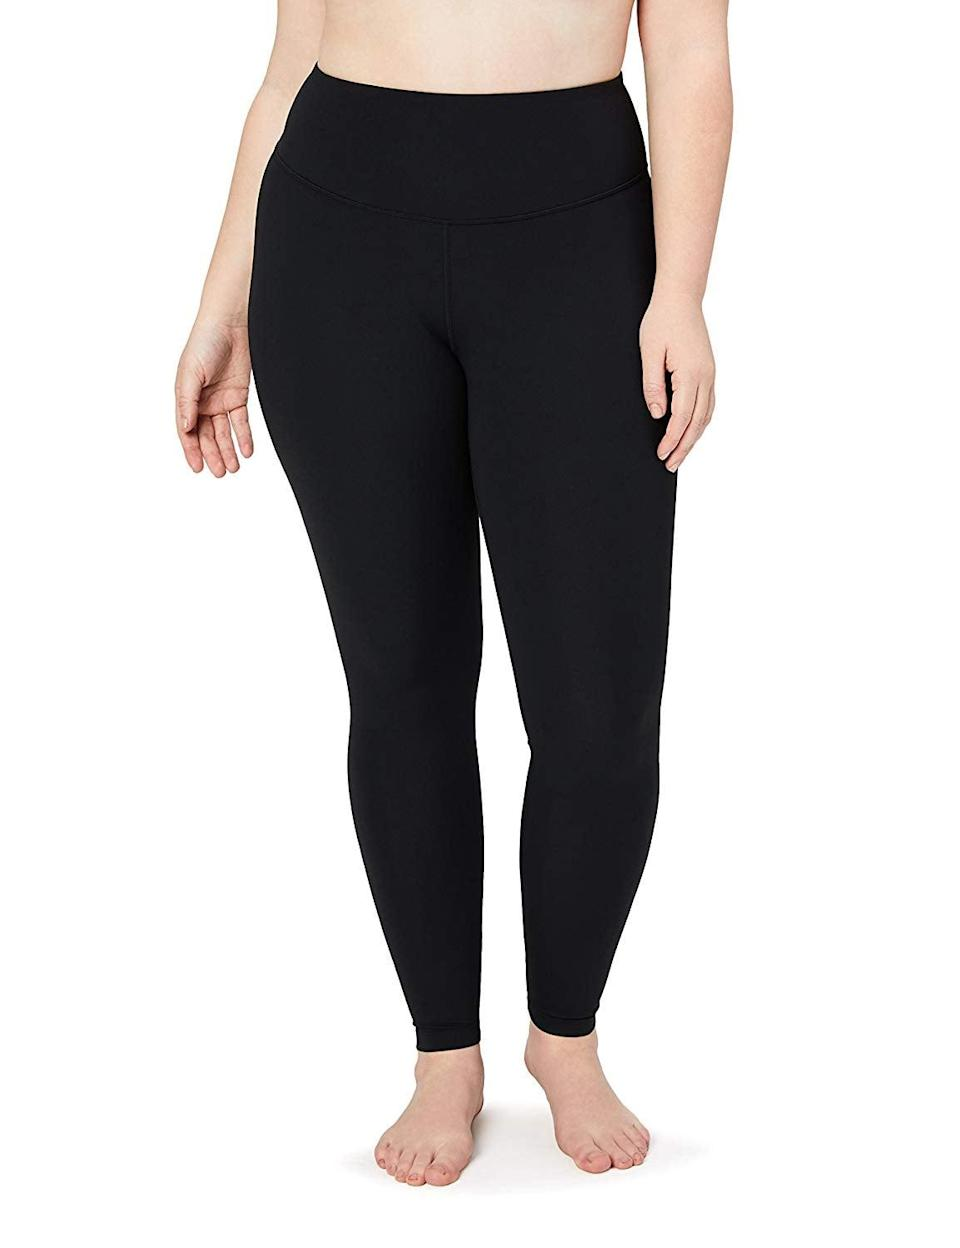 """<p>One woman said of the <span>Core 10 Women's Spectrum Yoga High Waist Full-Length Legging</span> ($28), """"The only thing that I don't like about these leggings is that I have to take them off to shower and wash them."""" If that's not a ringing endorsement, we don't know what is.</p>"""